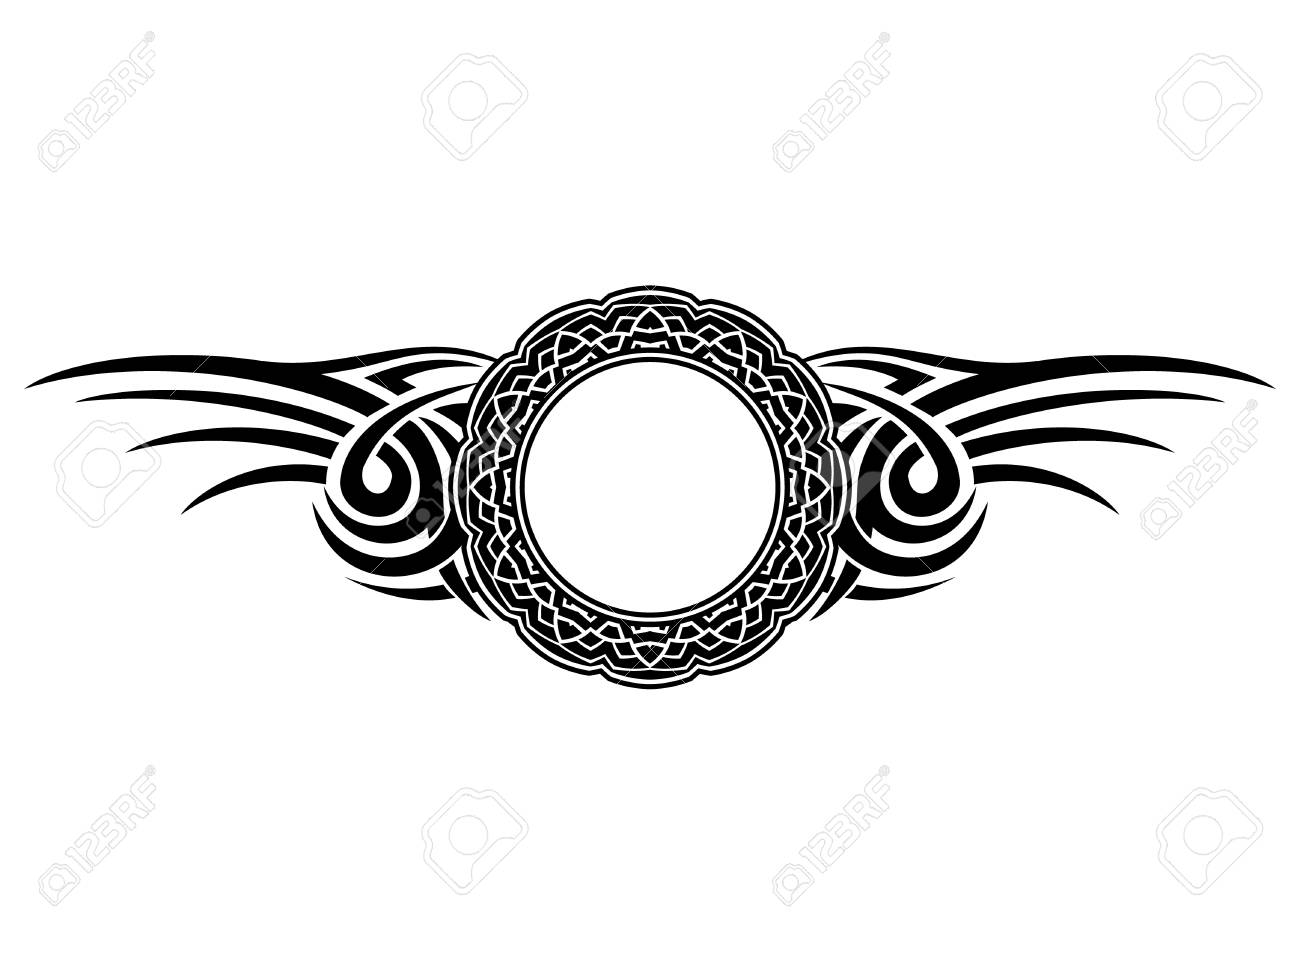 44d67706 Abstract vector illustration black and white round frame and tribal wings .  Design for tattoo or